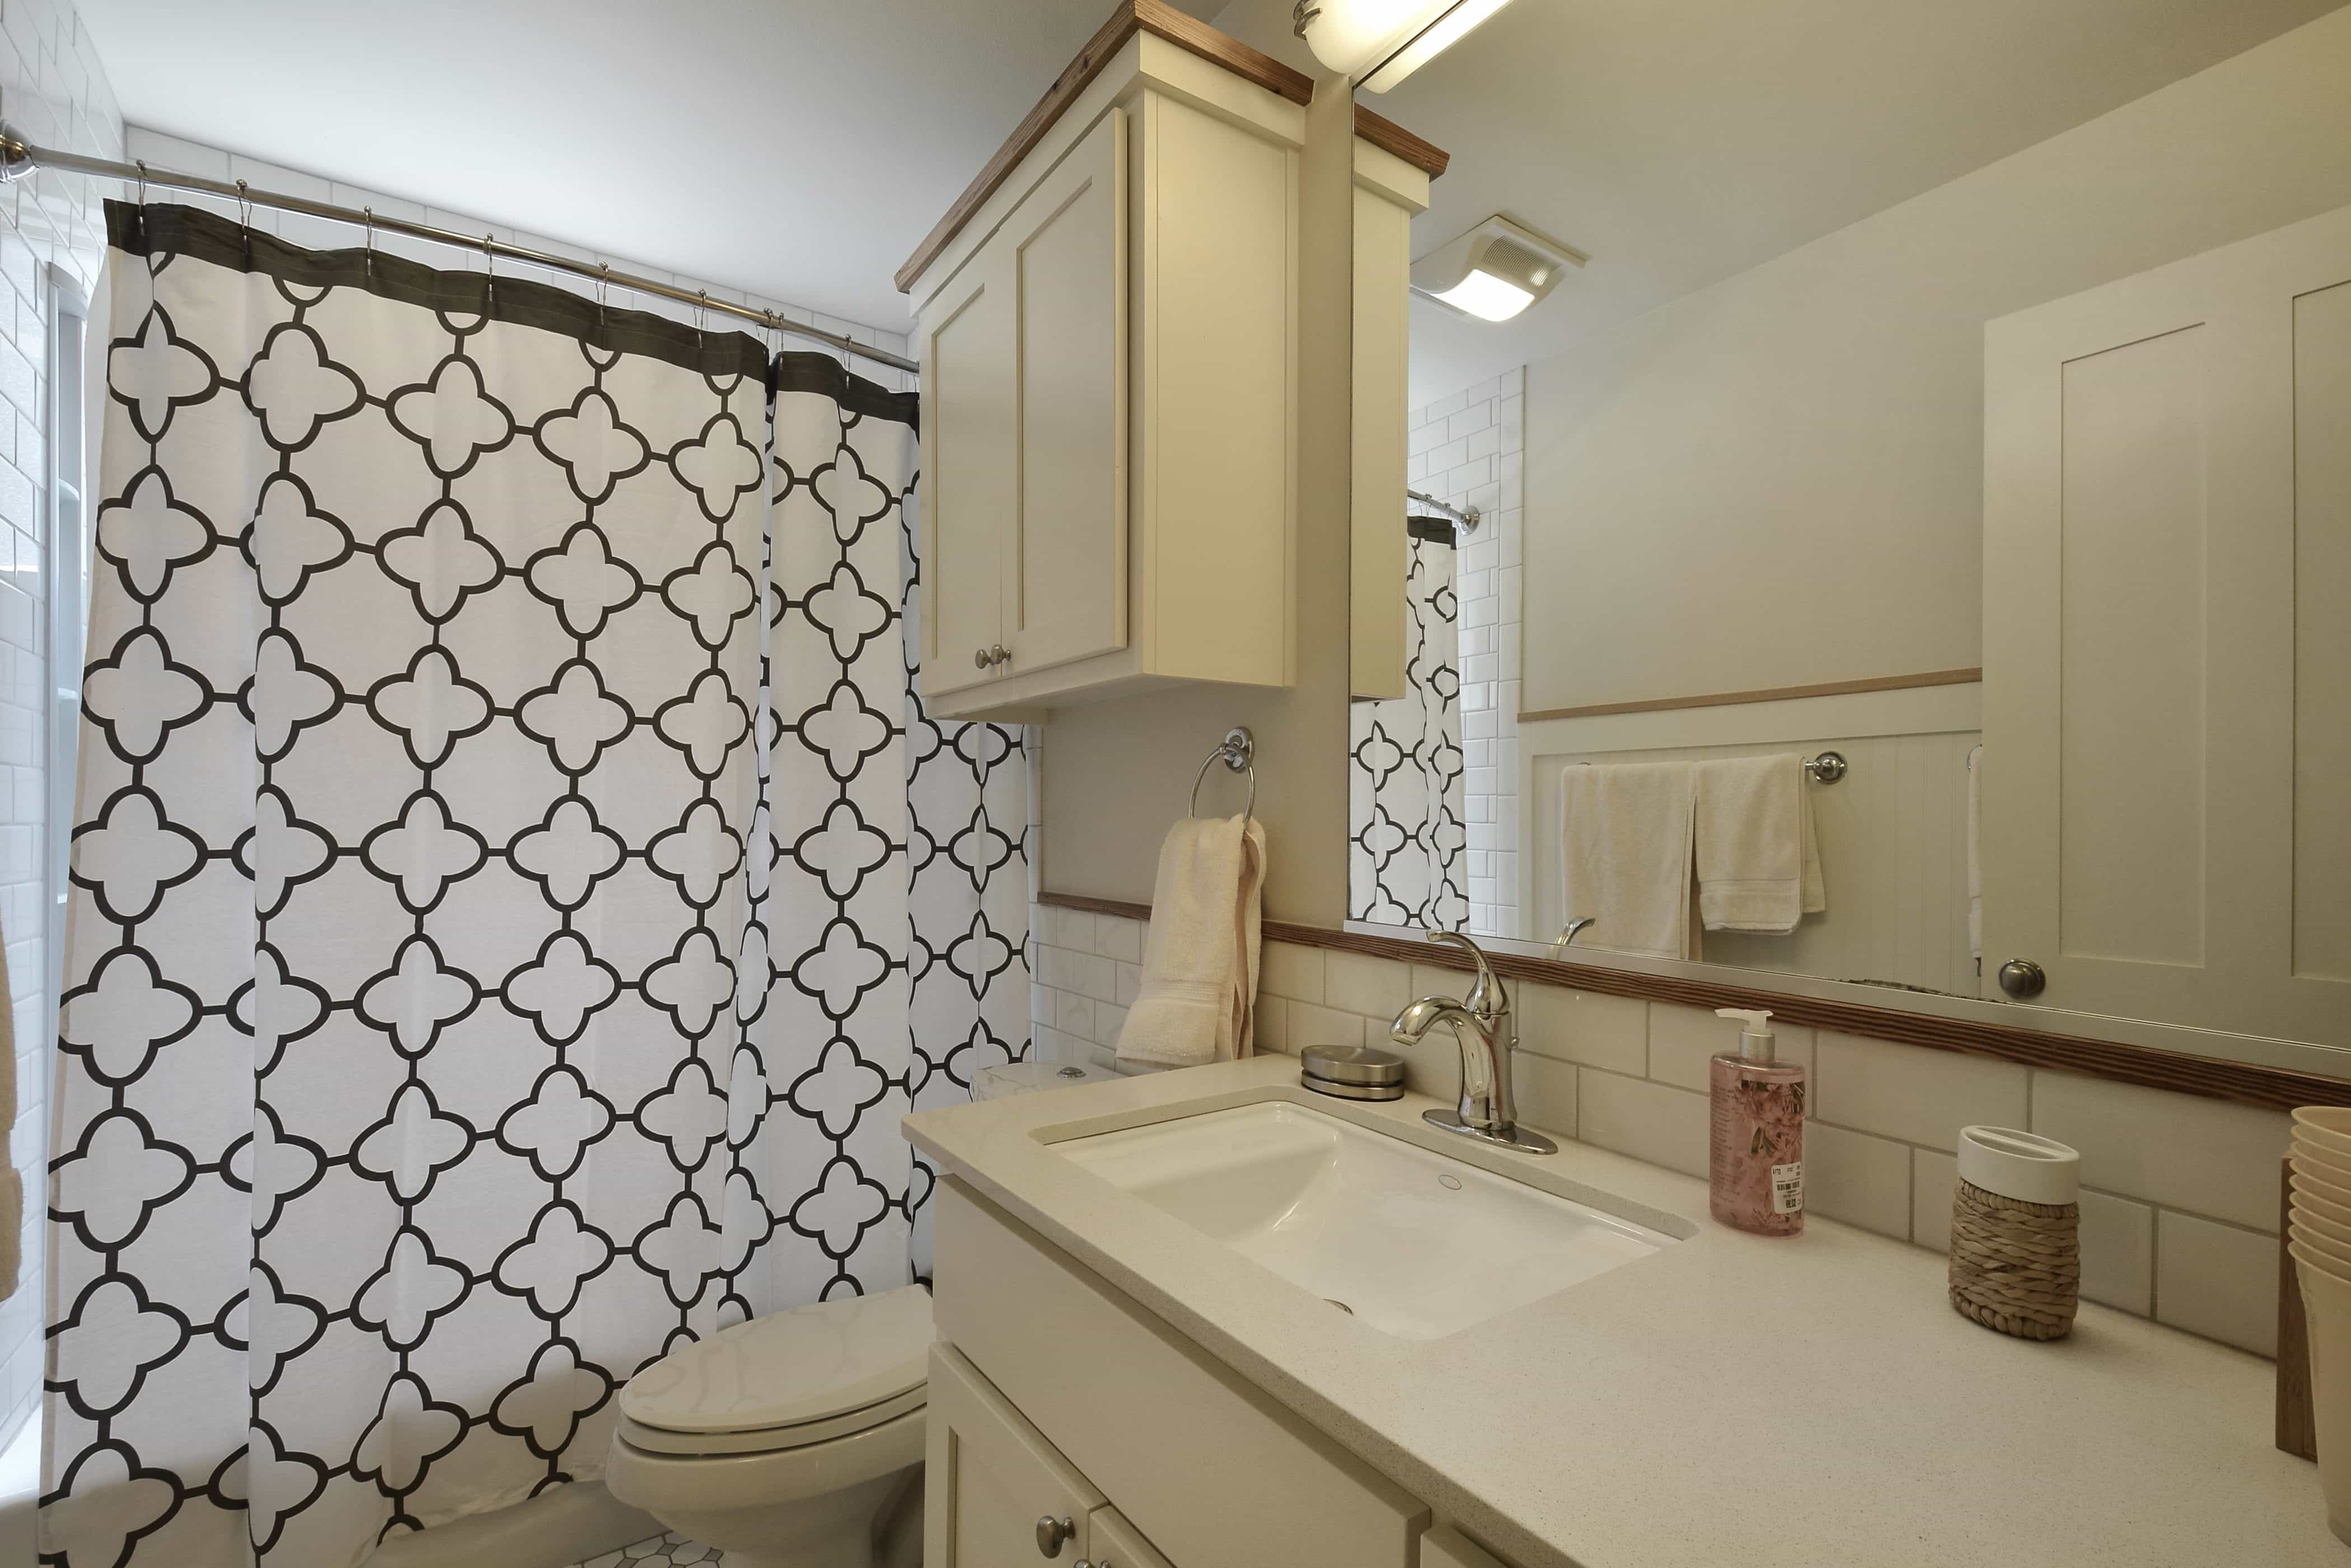 Transitional Bathroom Boasts Moroccan Print Shower Curtain (View 1 of 14)